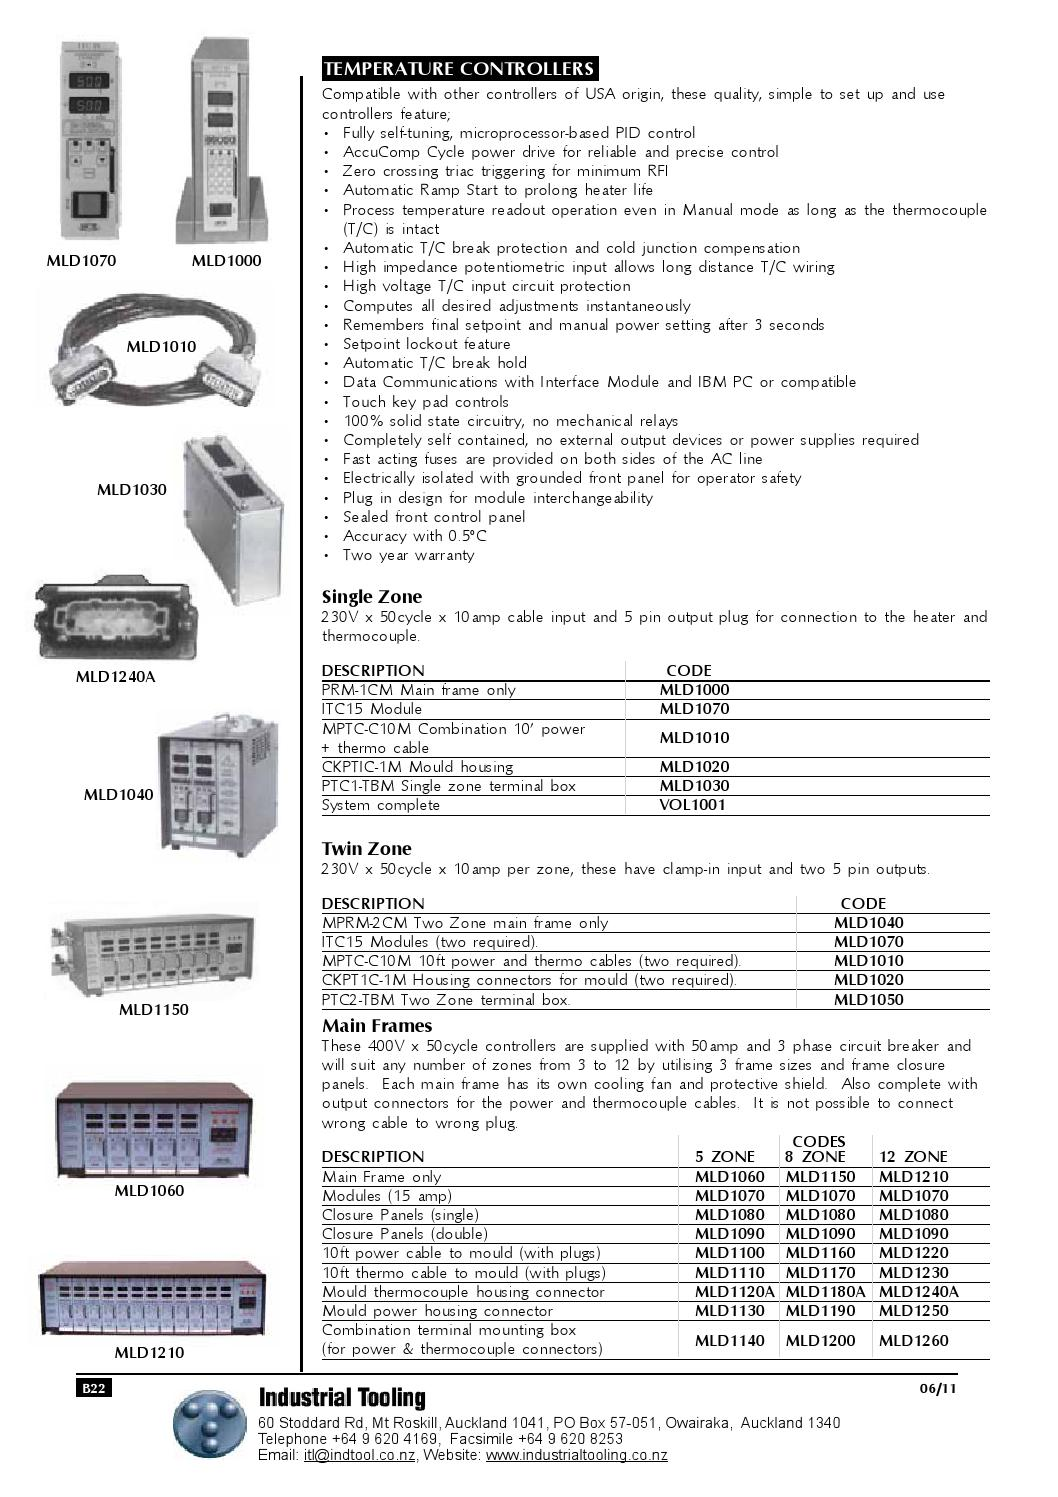 Industrial tooling stock catalogue 08 14 by Industrial